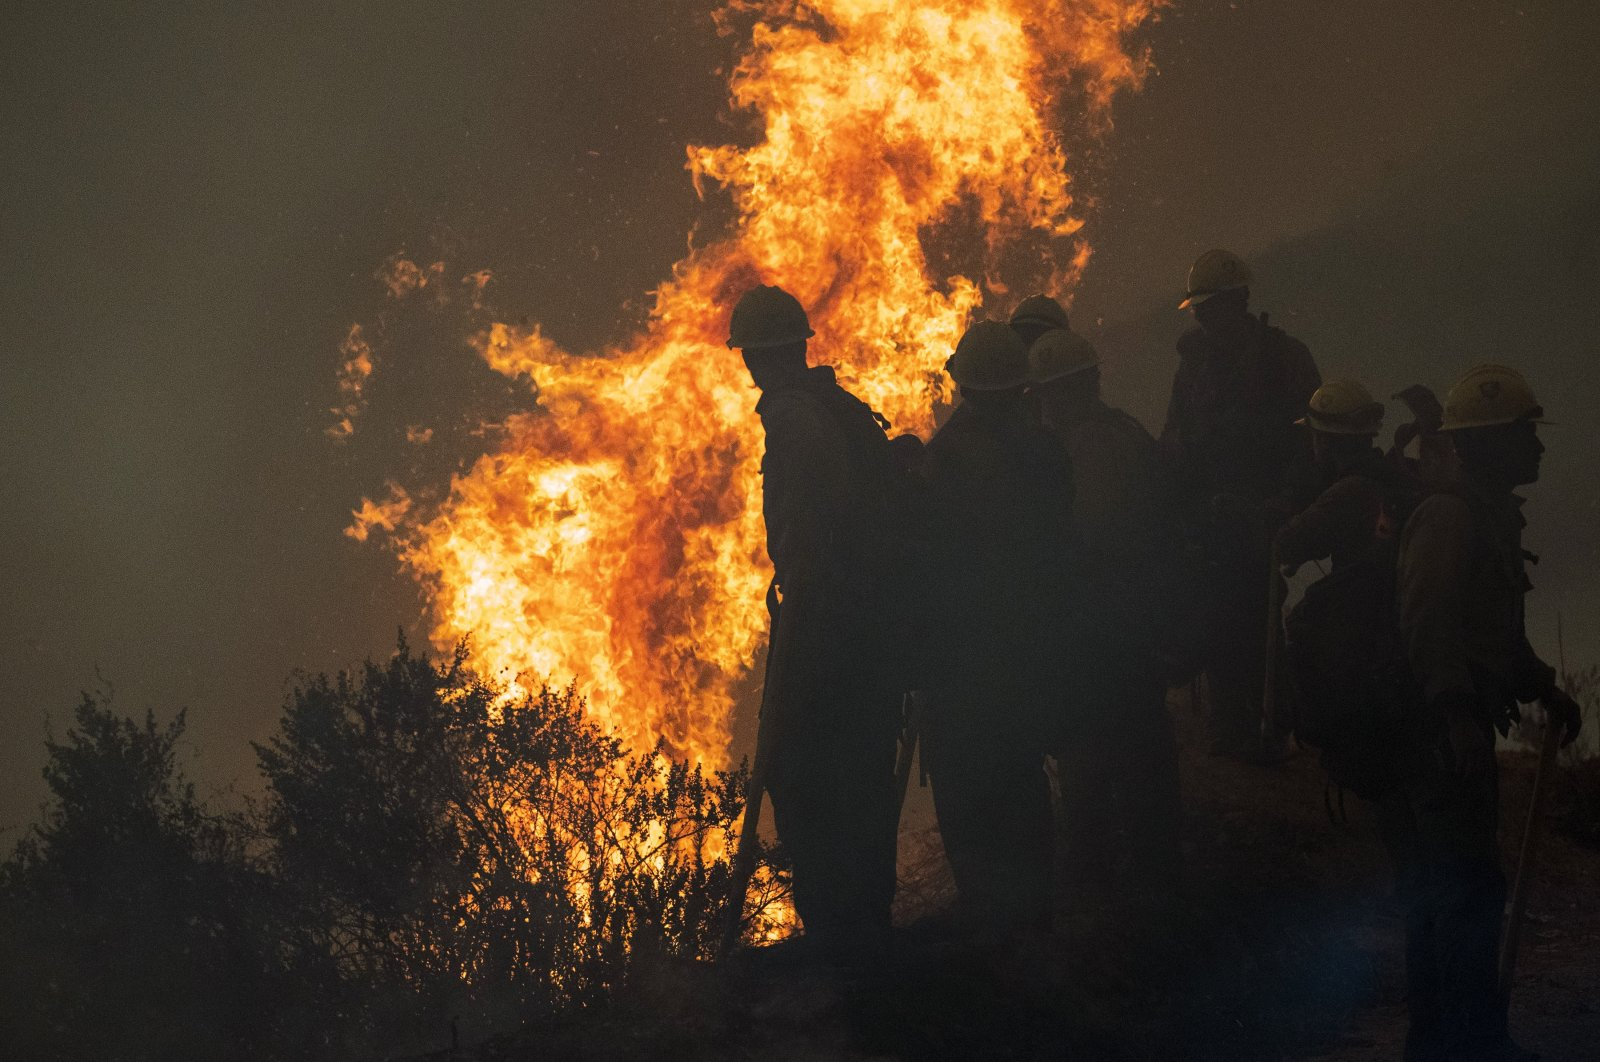 Firefighters monitor a controlled burn along Nacimiento-Fergusson Road to help contain the Dolan Fire near Big Sur, California, U.S., Sept. 11, 2020. (AP Photo)